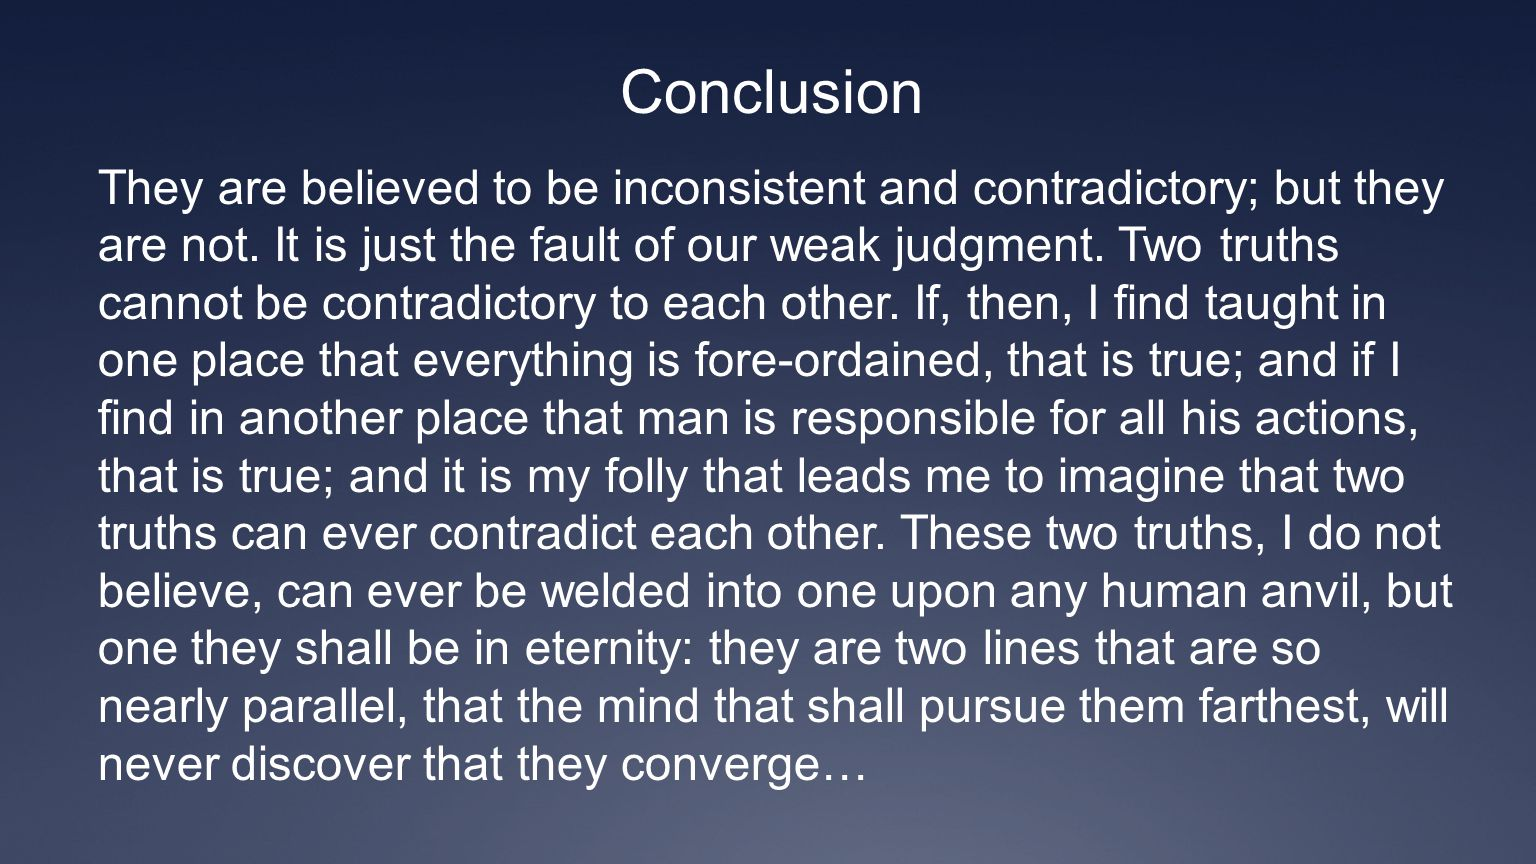 They are believed to be inconsistent and contradictory; but they are not.